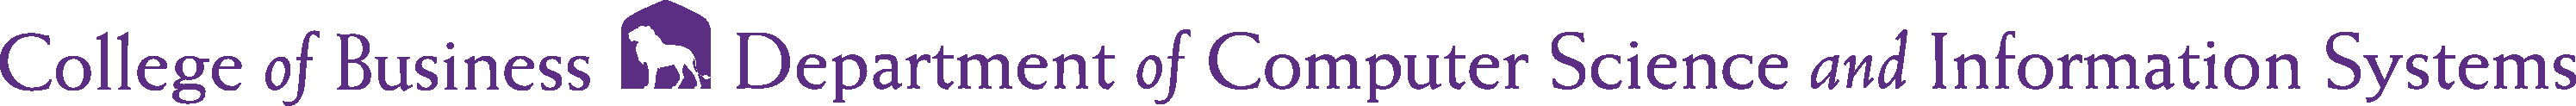 College of Business - Computer Science and Information Systems Logo - Purple - Version 2